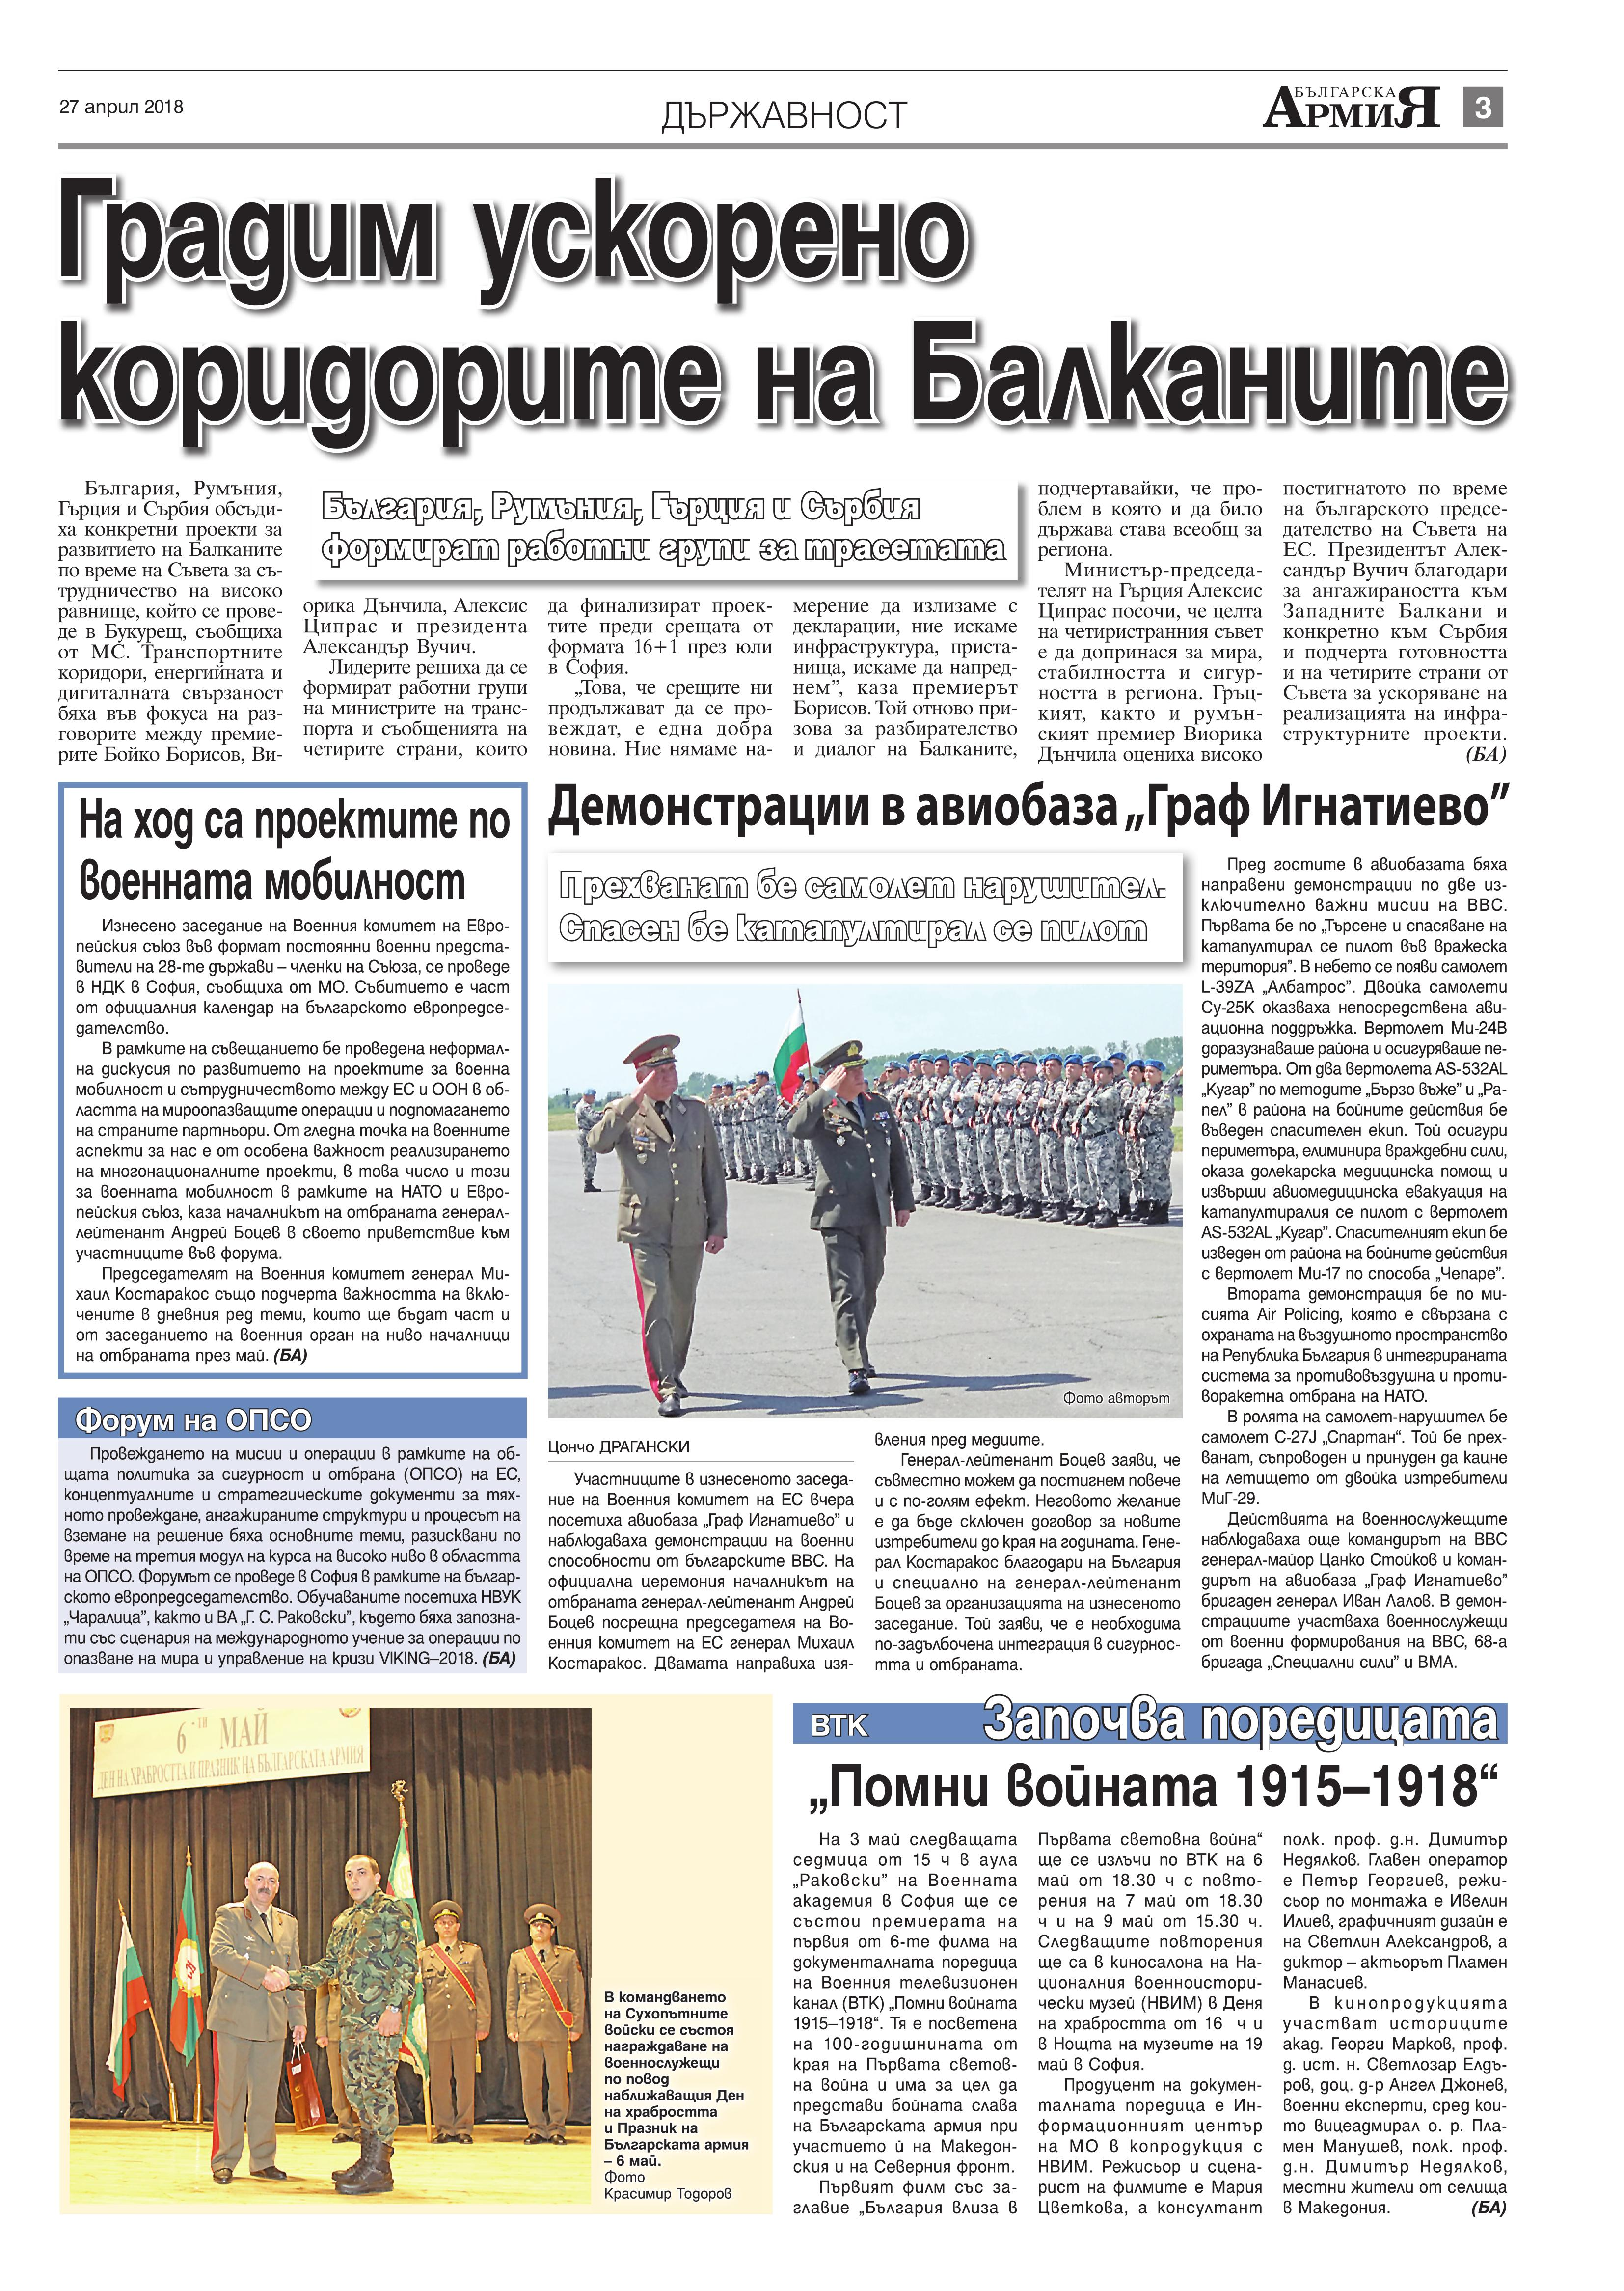 http://armymedia.bg/wp-content/uploads/2015/06/03.page1-Copy-2.jpg